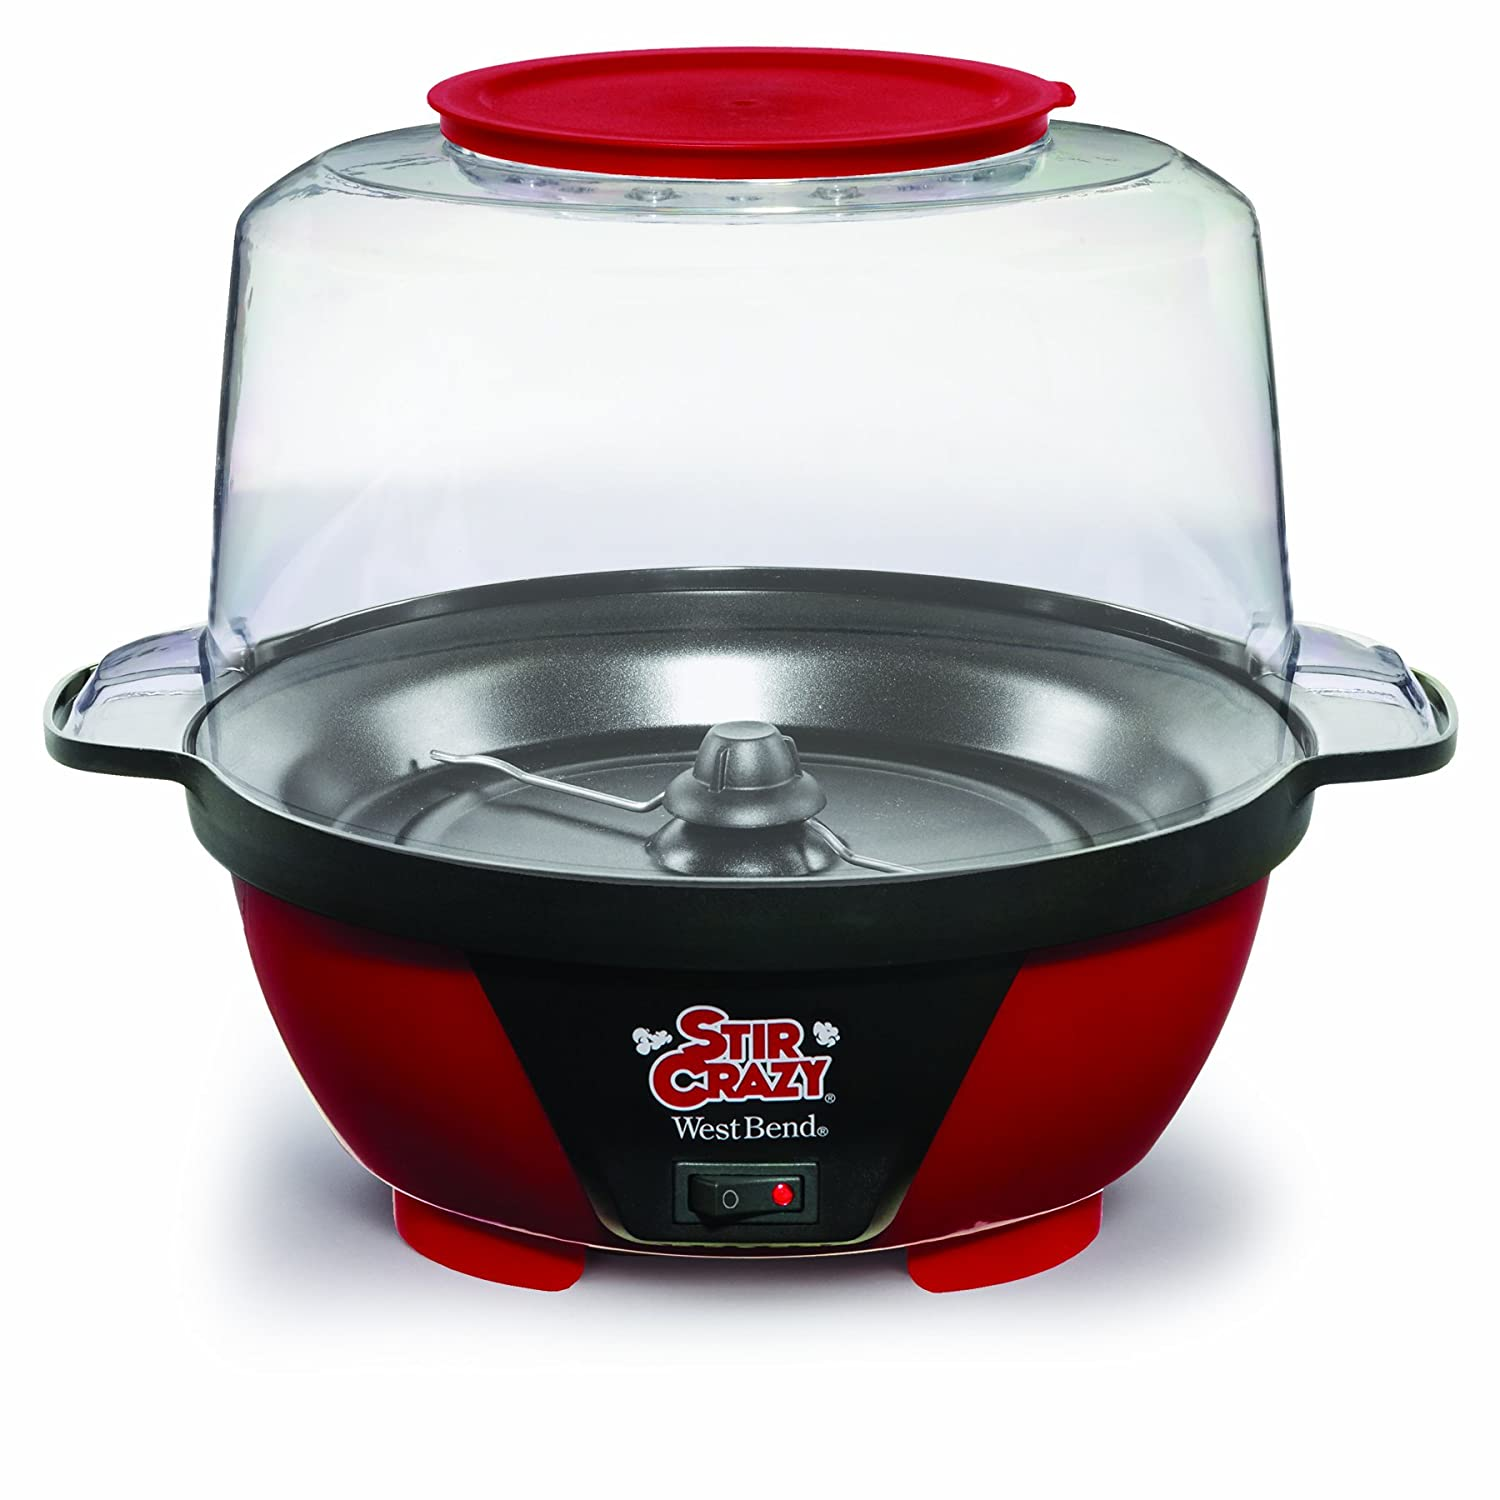 Uncategorized West Bend Kitchen Appliances west bend 82505 stir crazy popcorn popper 6 quart new free has been a leader in developing electric kitchen appliances since being founded wisconsin 1911 providing